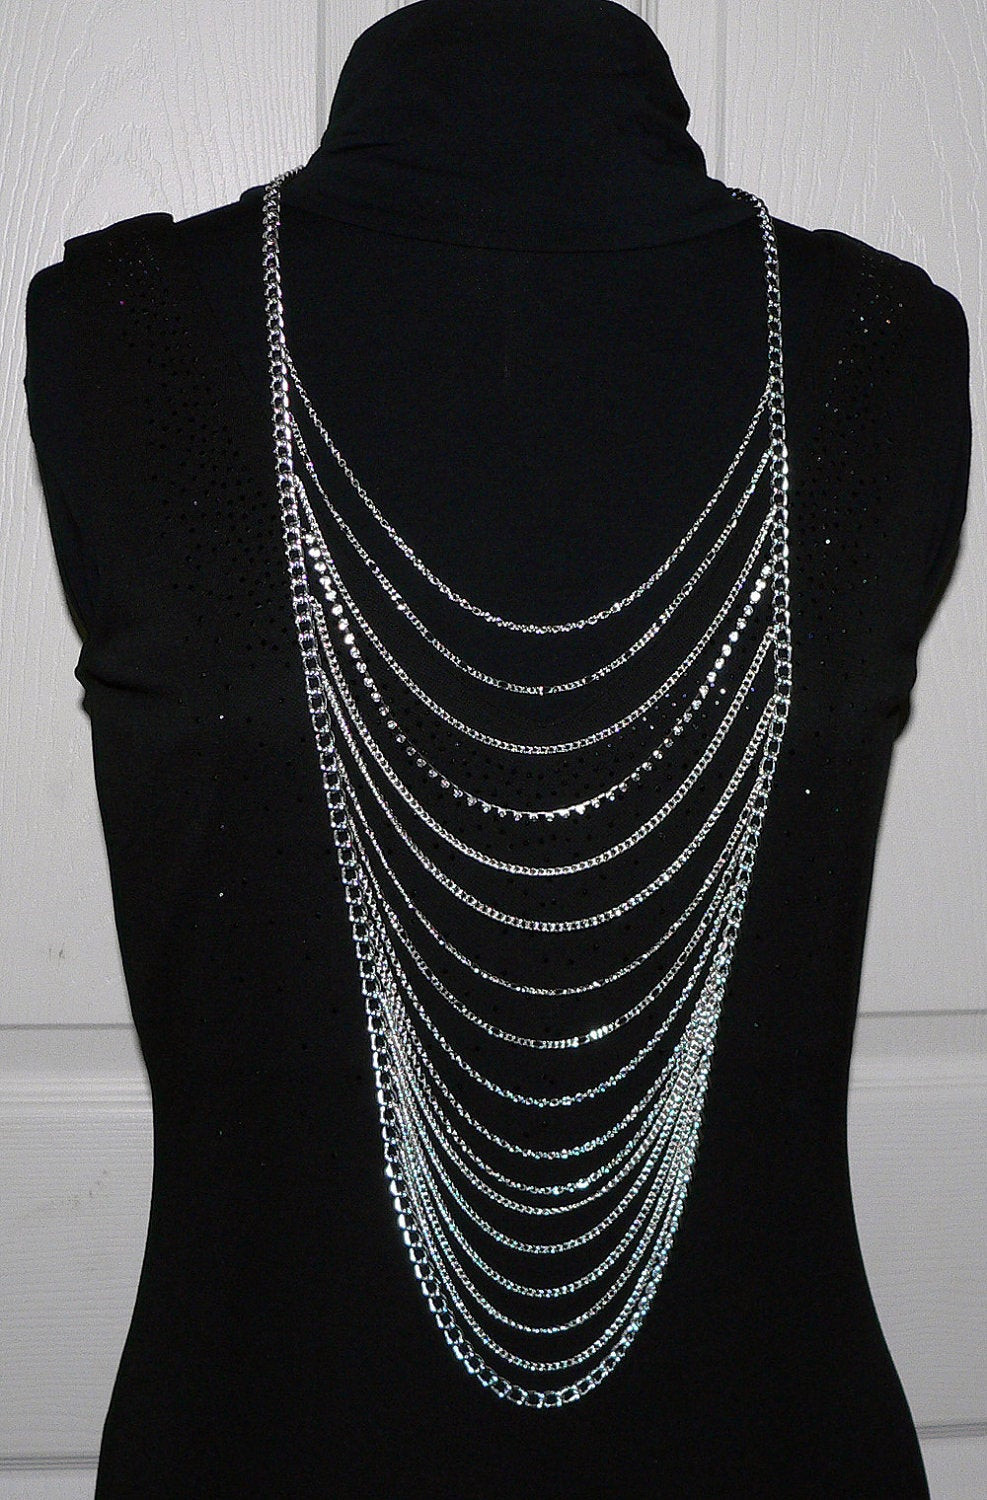 Body Chain Necklace  Ladder Body Chain Necklace Silver Harness by